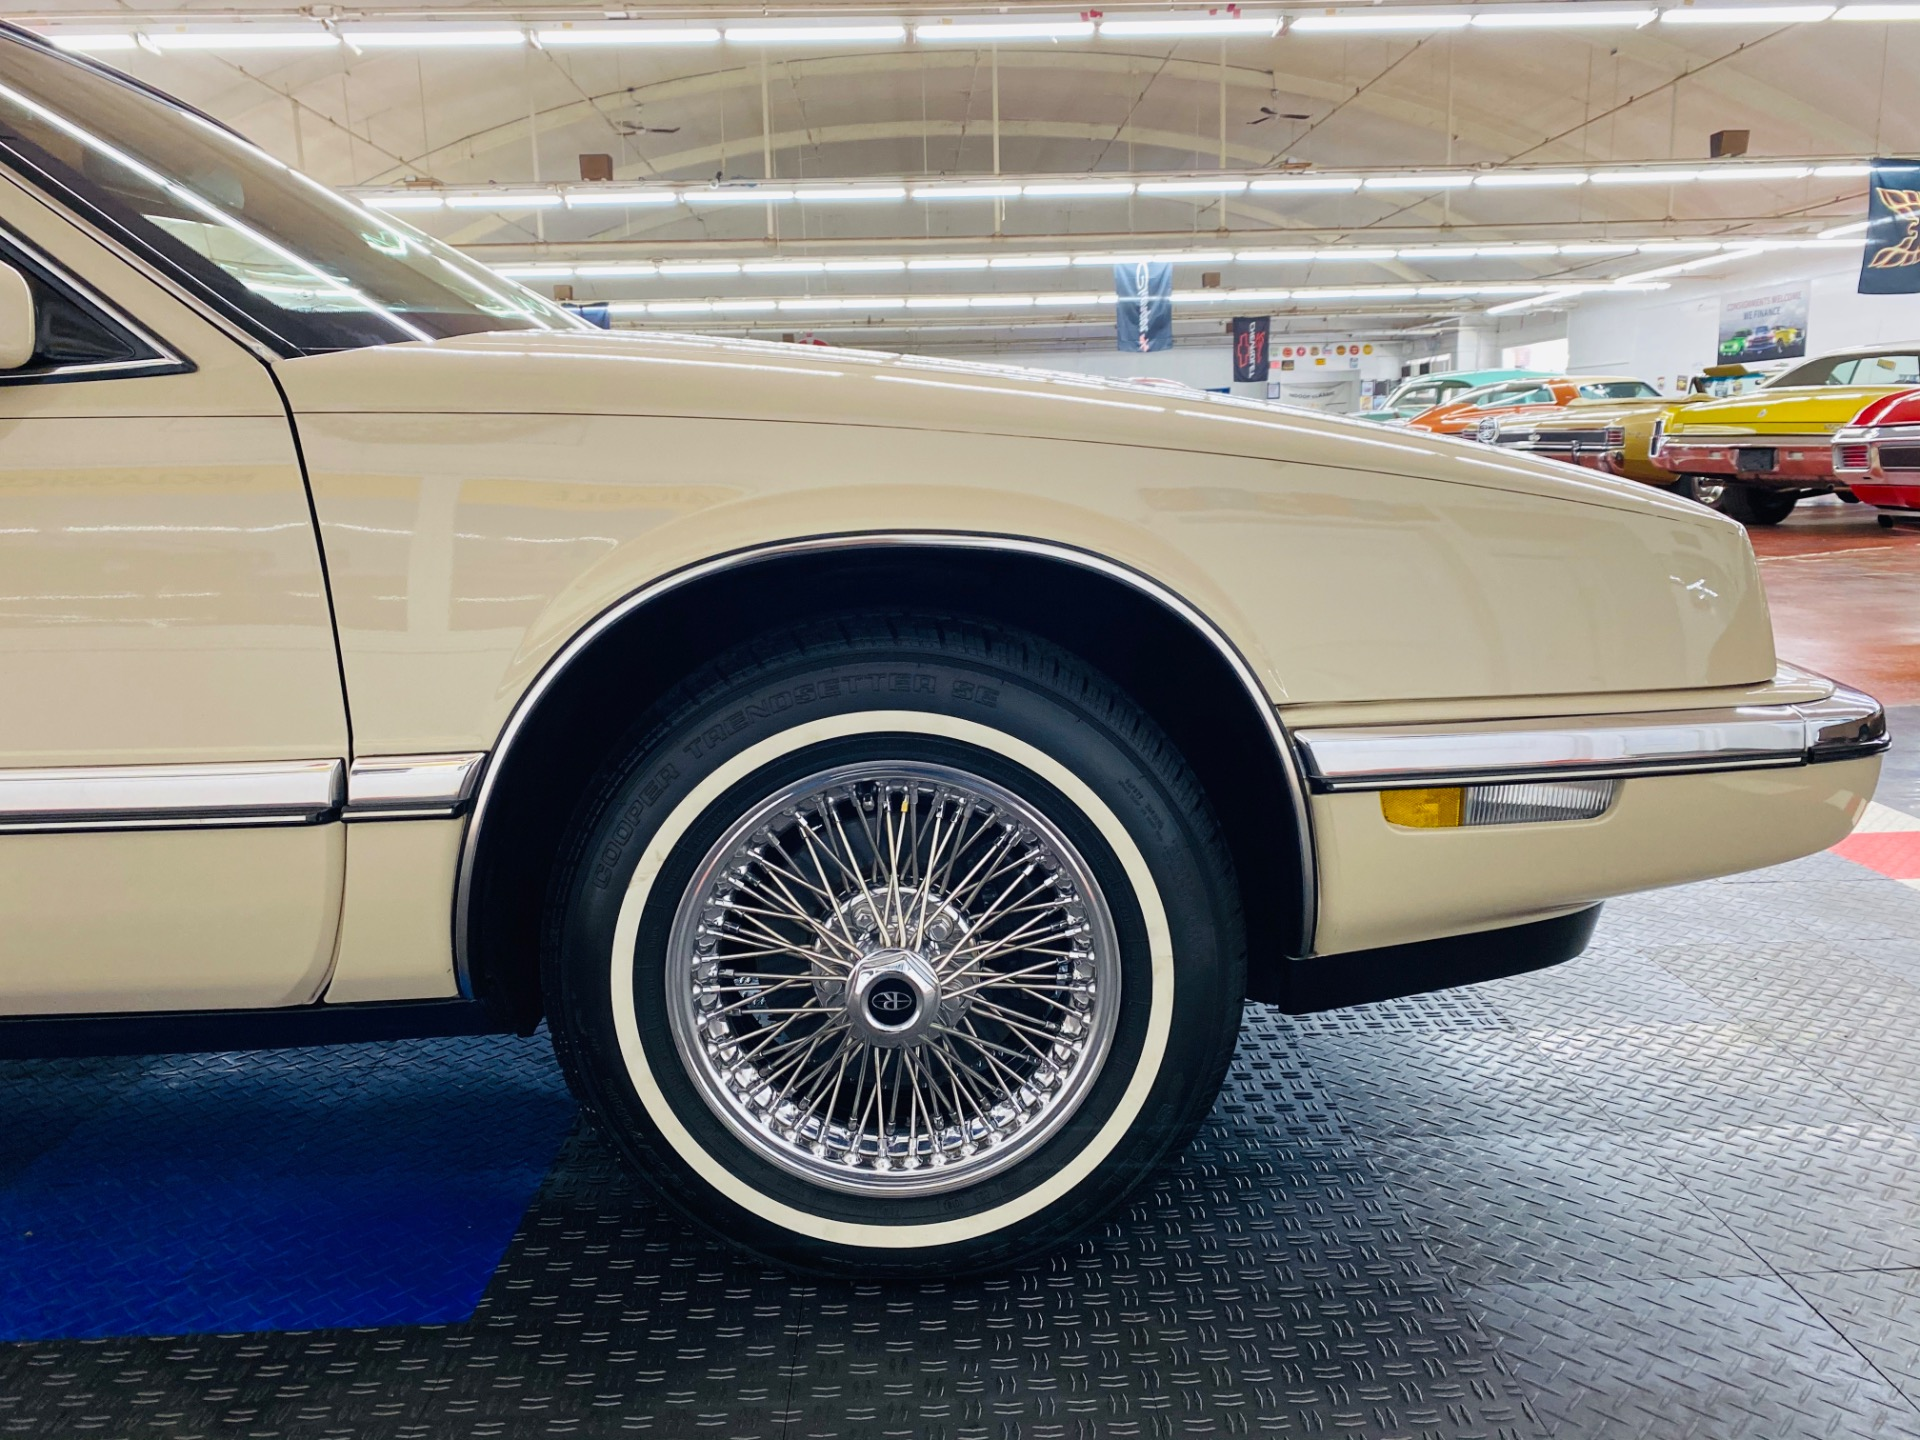 Used 1992 Buick Riviera - LIKE NEW CONDITION - FULL SERVICE RECORDS - SUPER CLEAN - SEE VIDEO - | Mundelein, IL